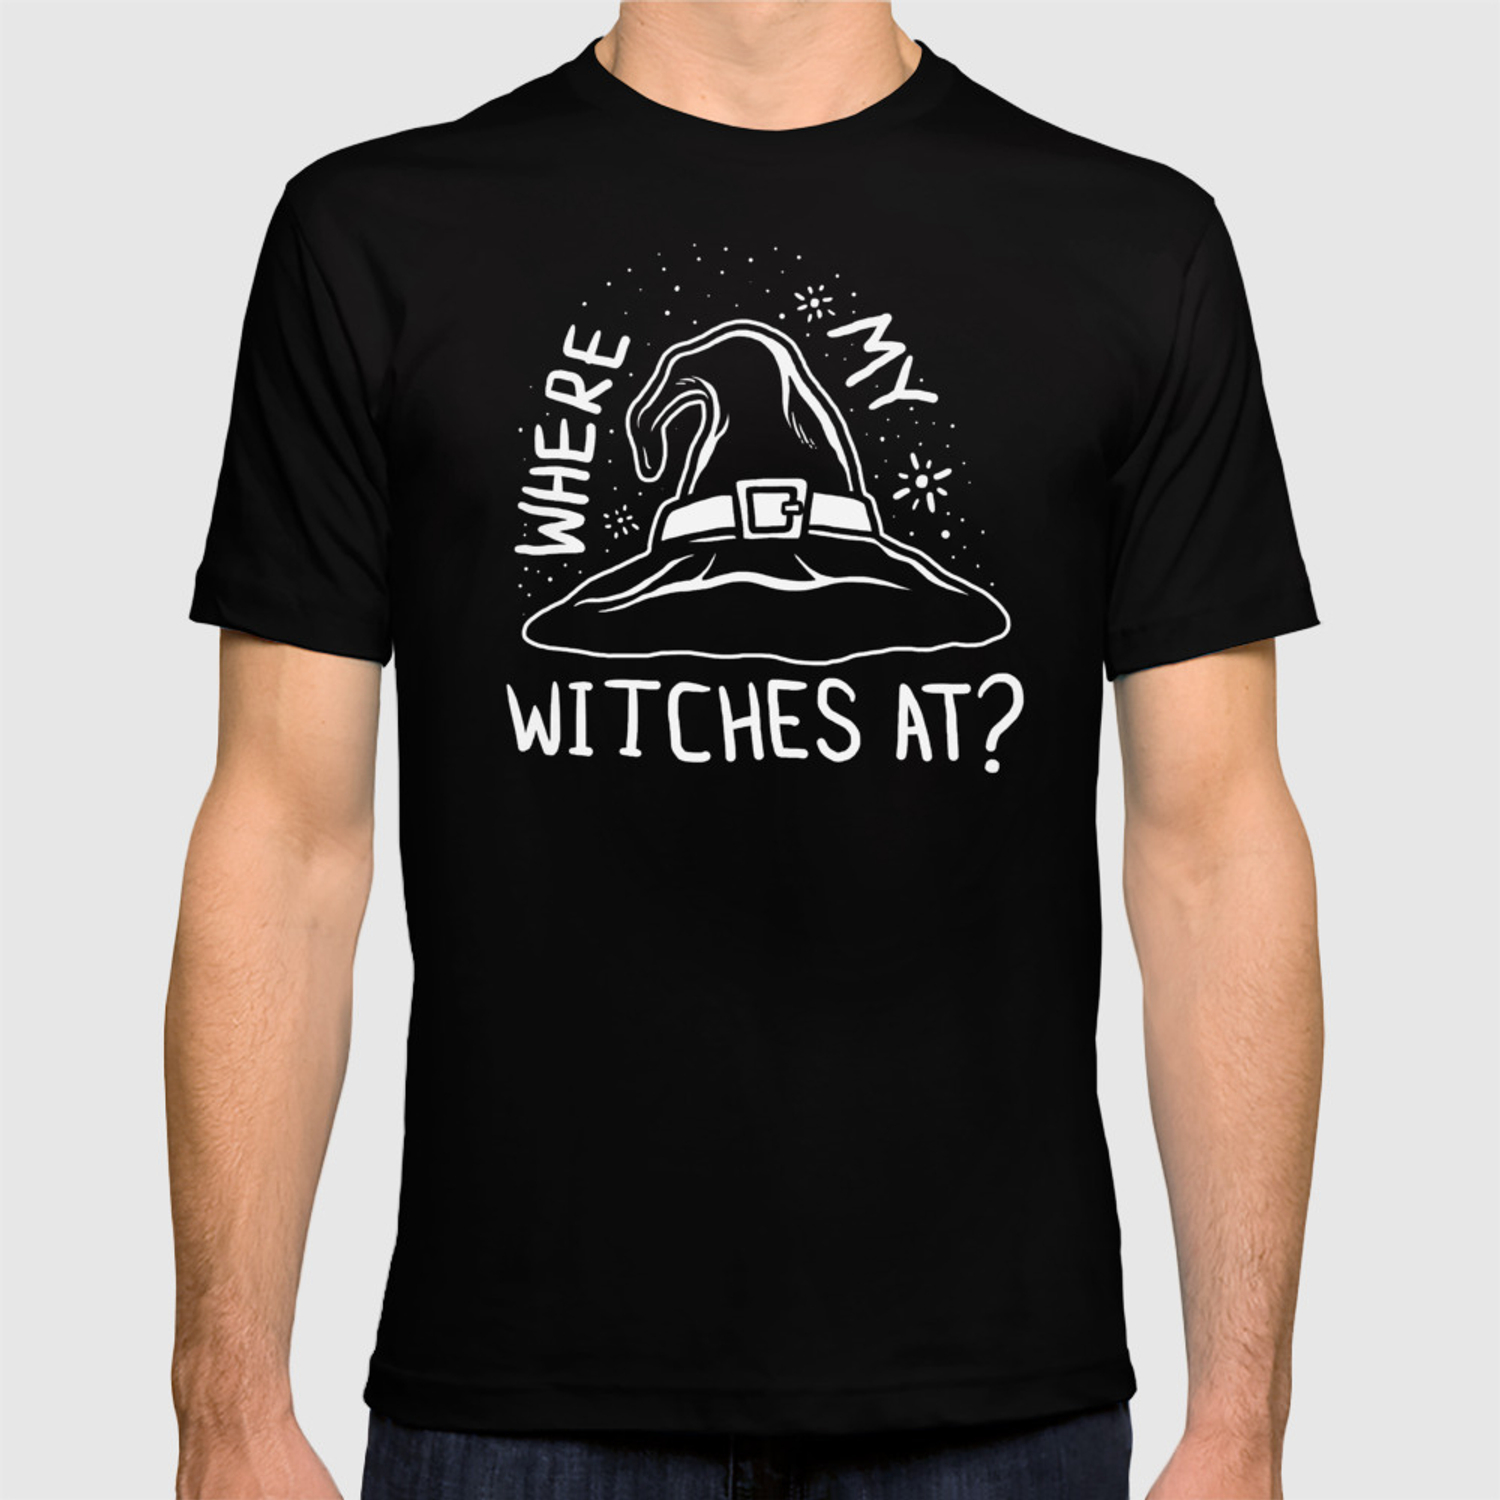 7984877c678d8 Where My Witches At T-shirt